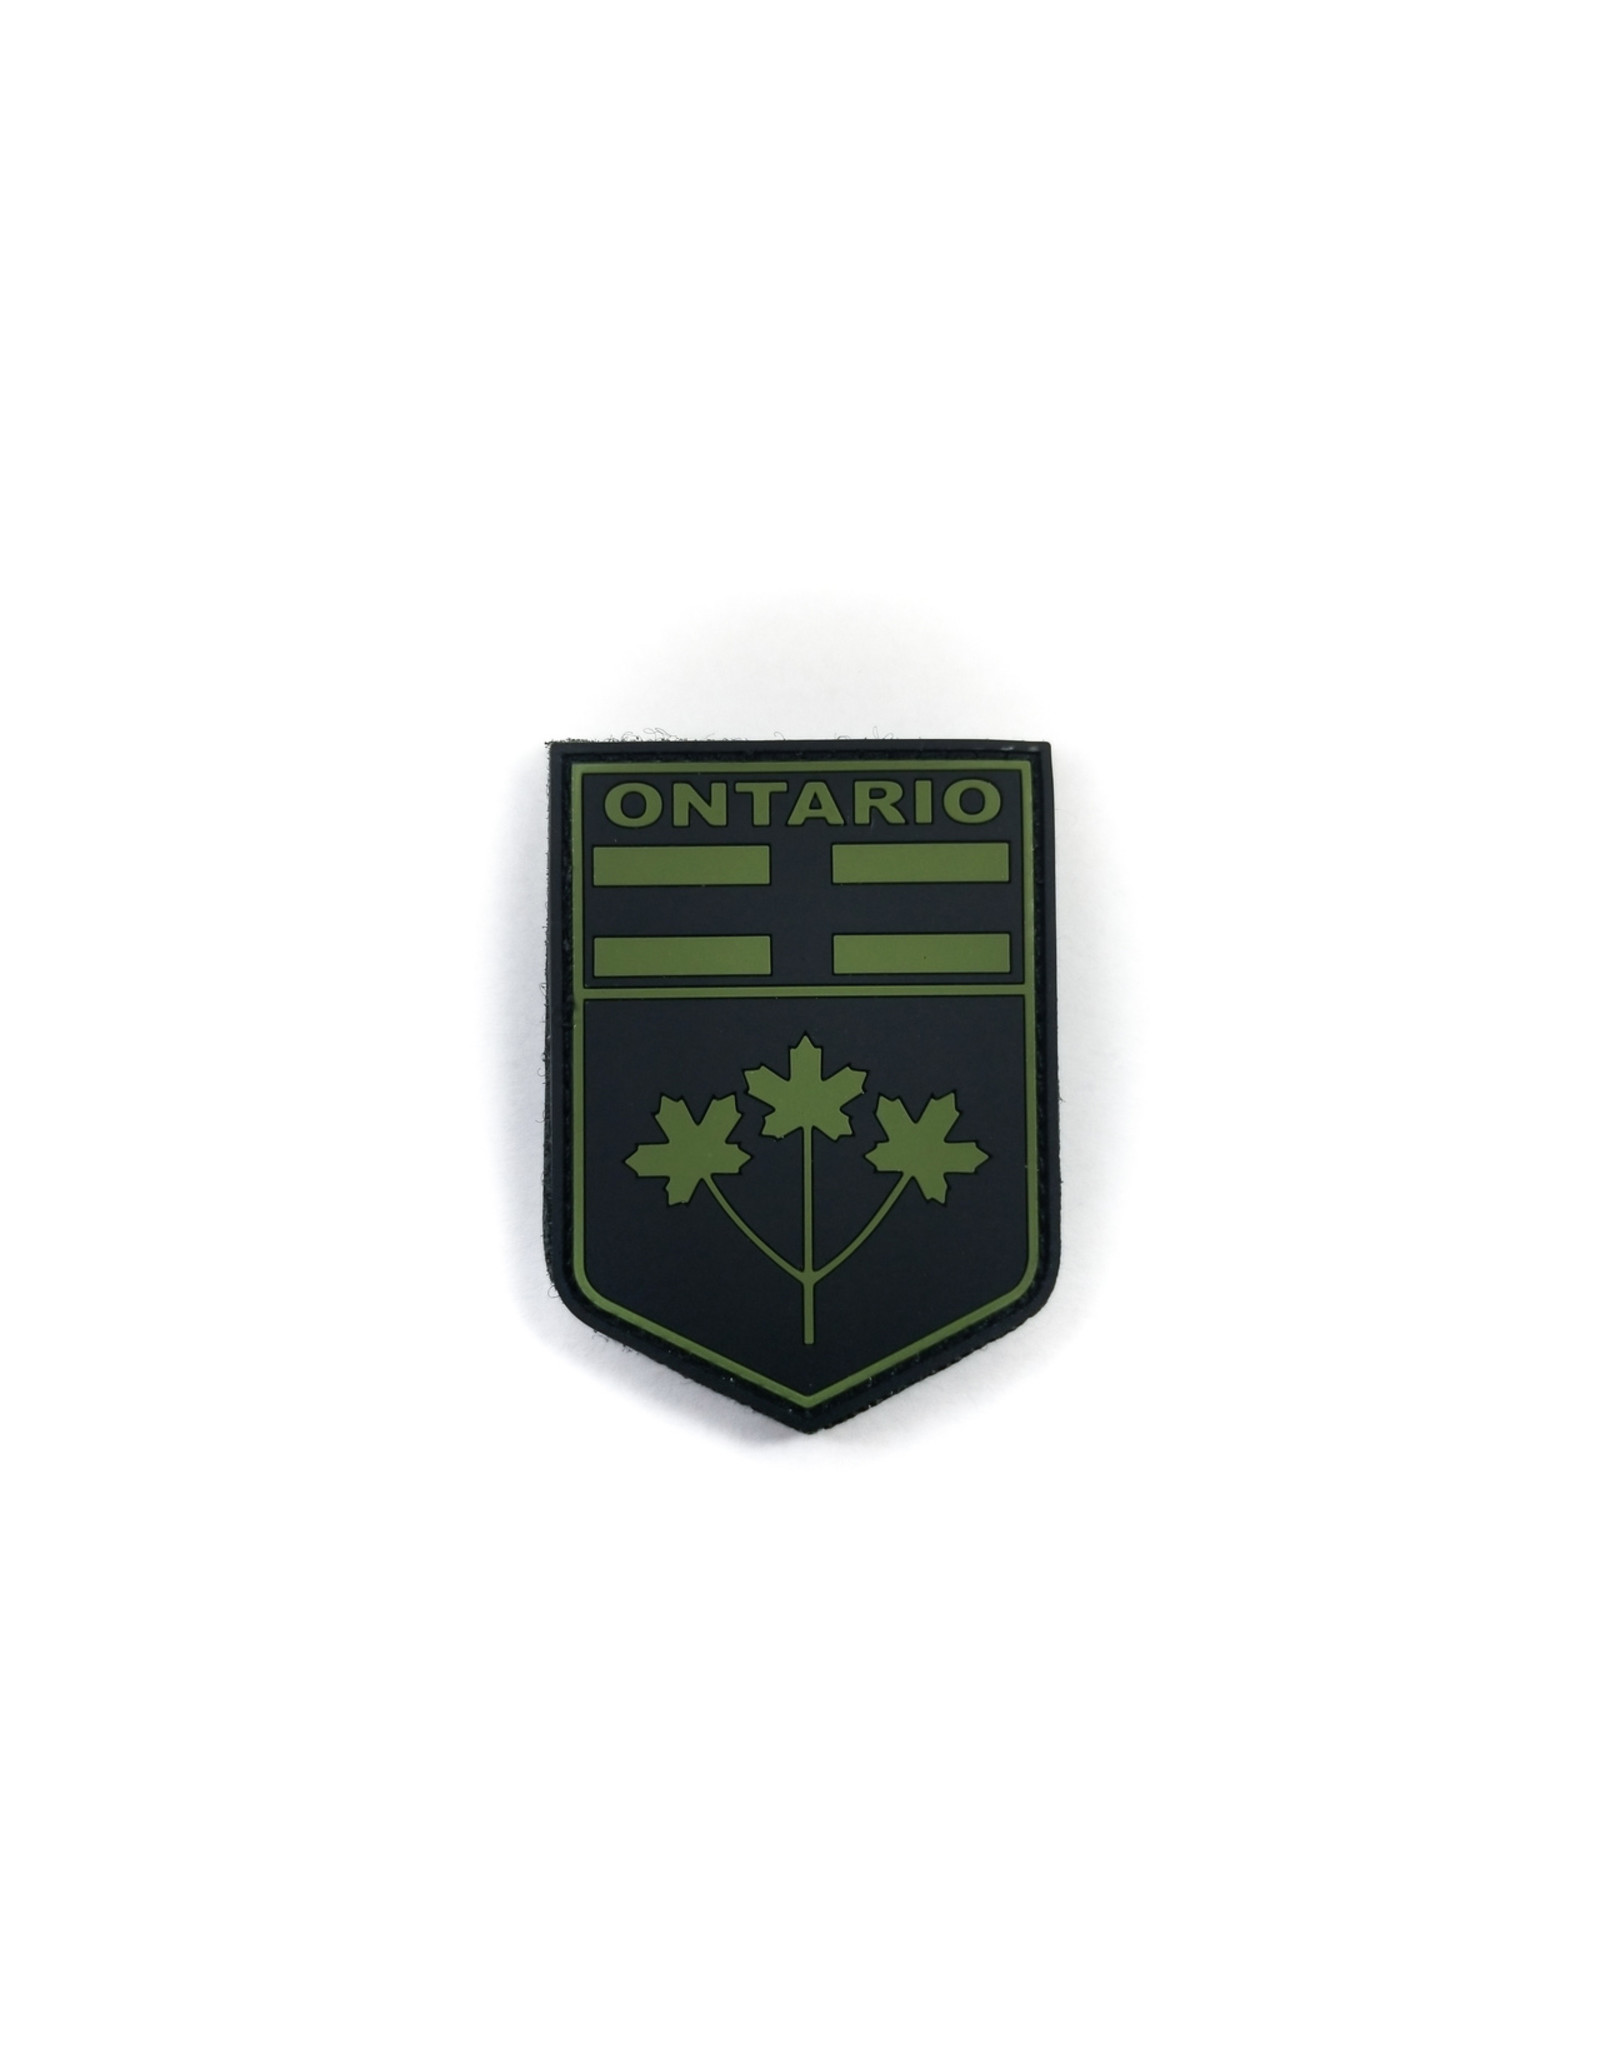 TIC Patch - ONTARIO SHIELD ODG